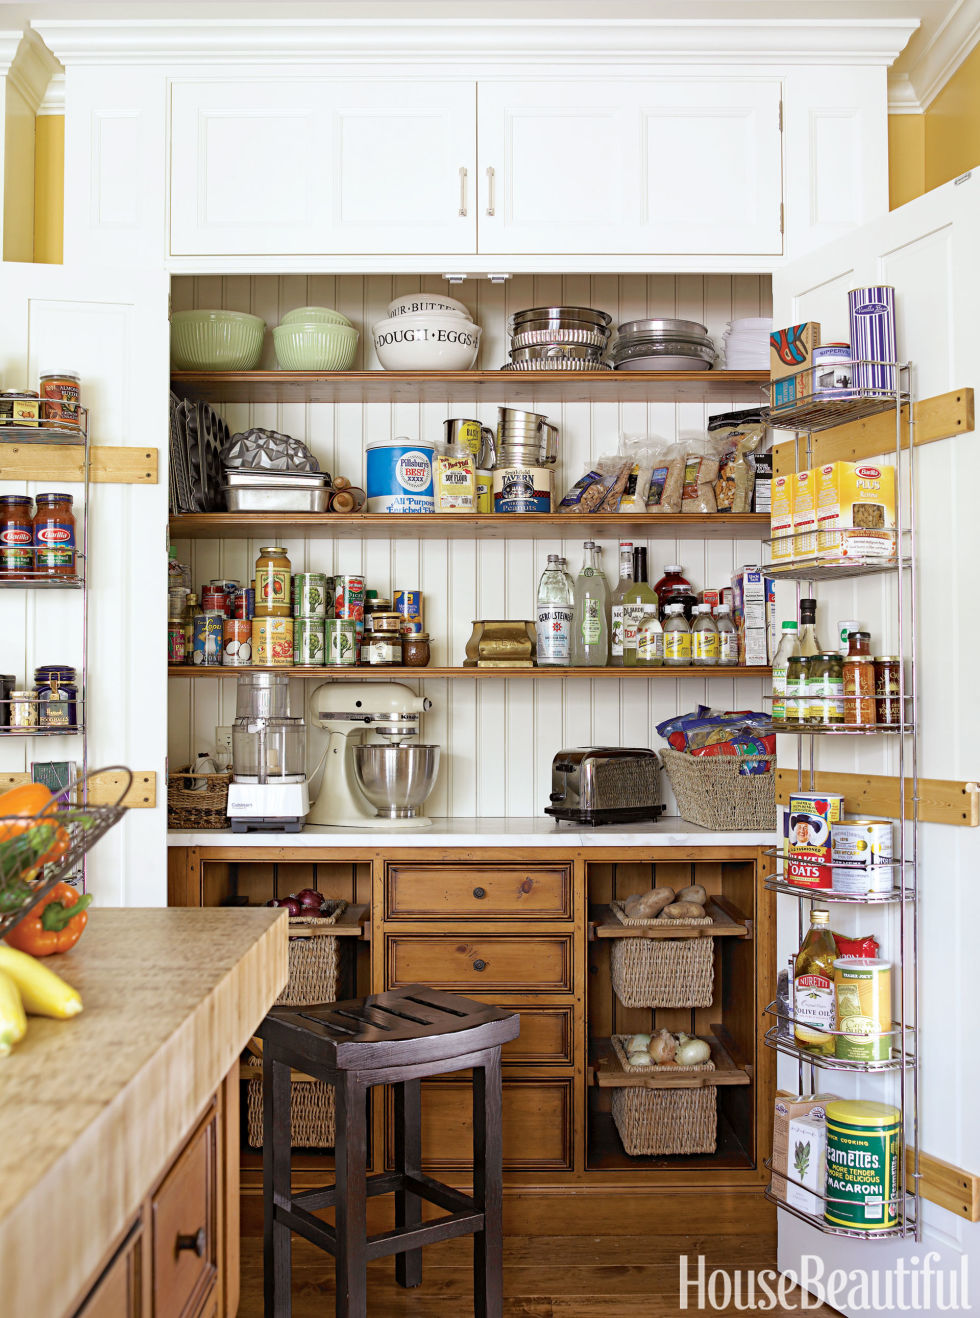 Kitchen Storage 20 unique kitchen storage ideas - easy storage solutions for kitchens